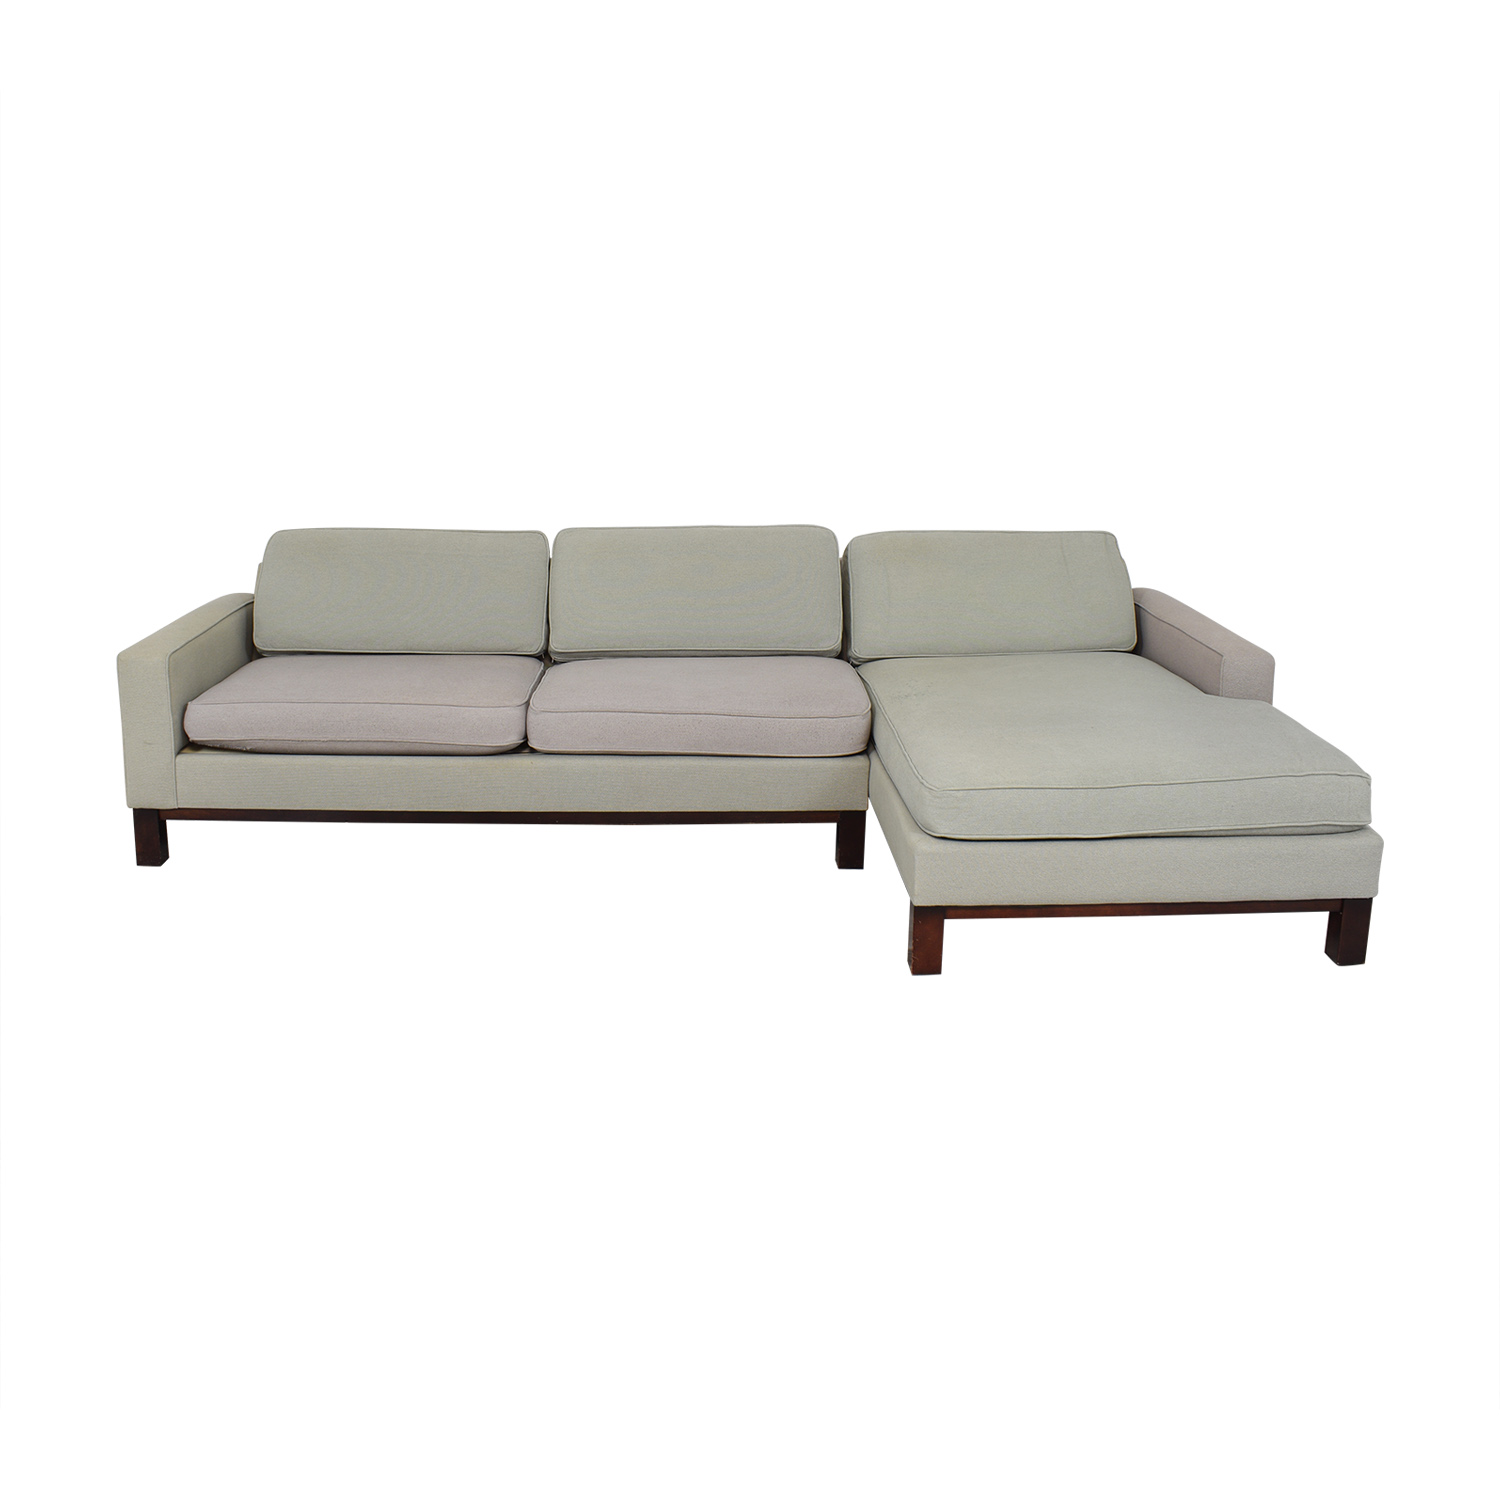 Room & Board Chaise Sectional Sofa / Sectionals